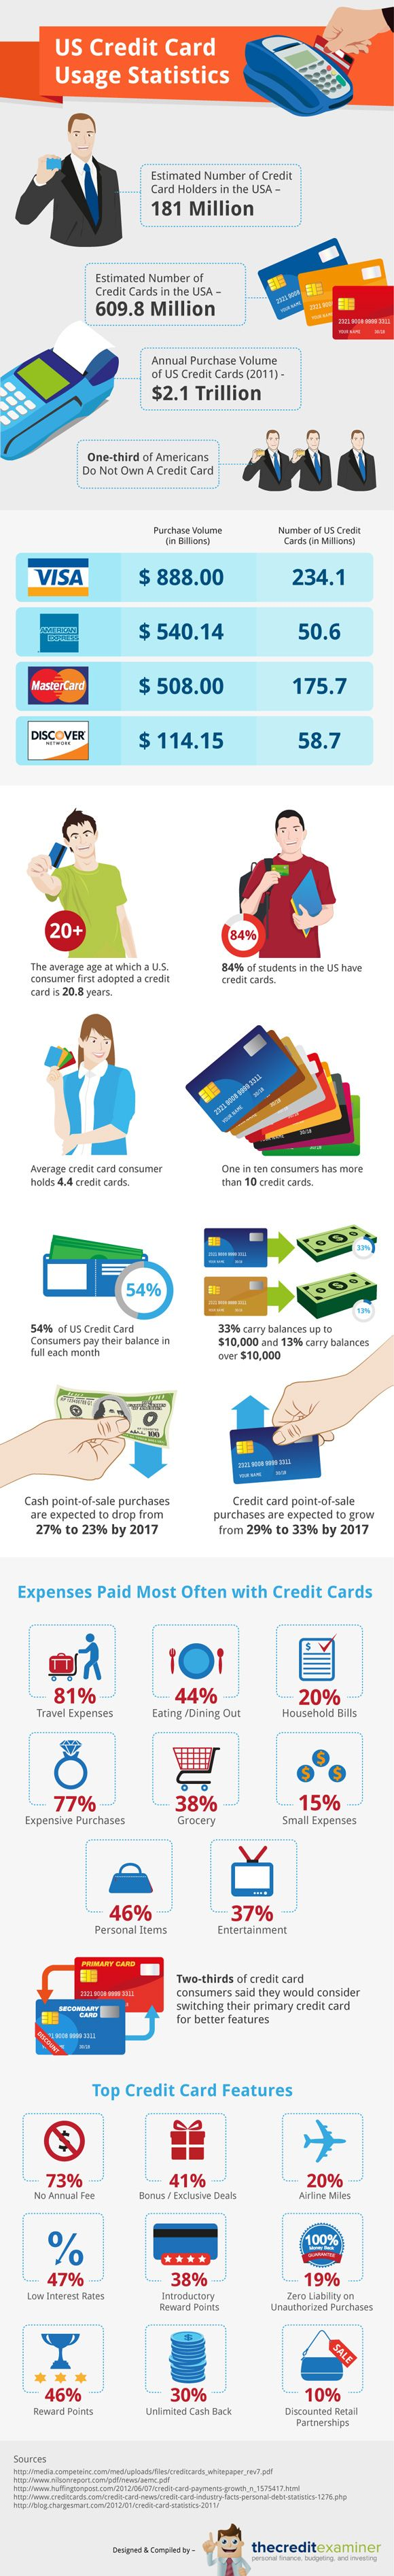 credit card usage in the usa